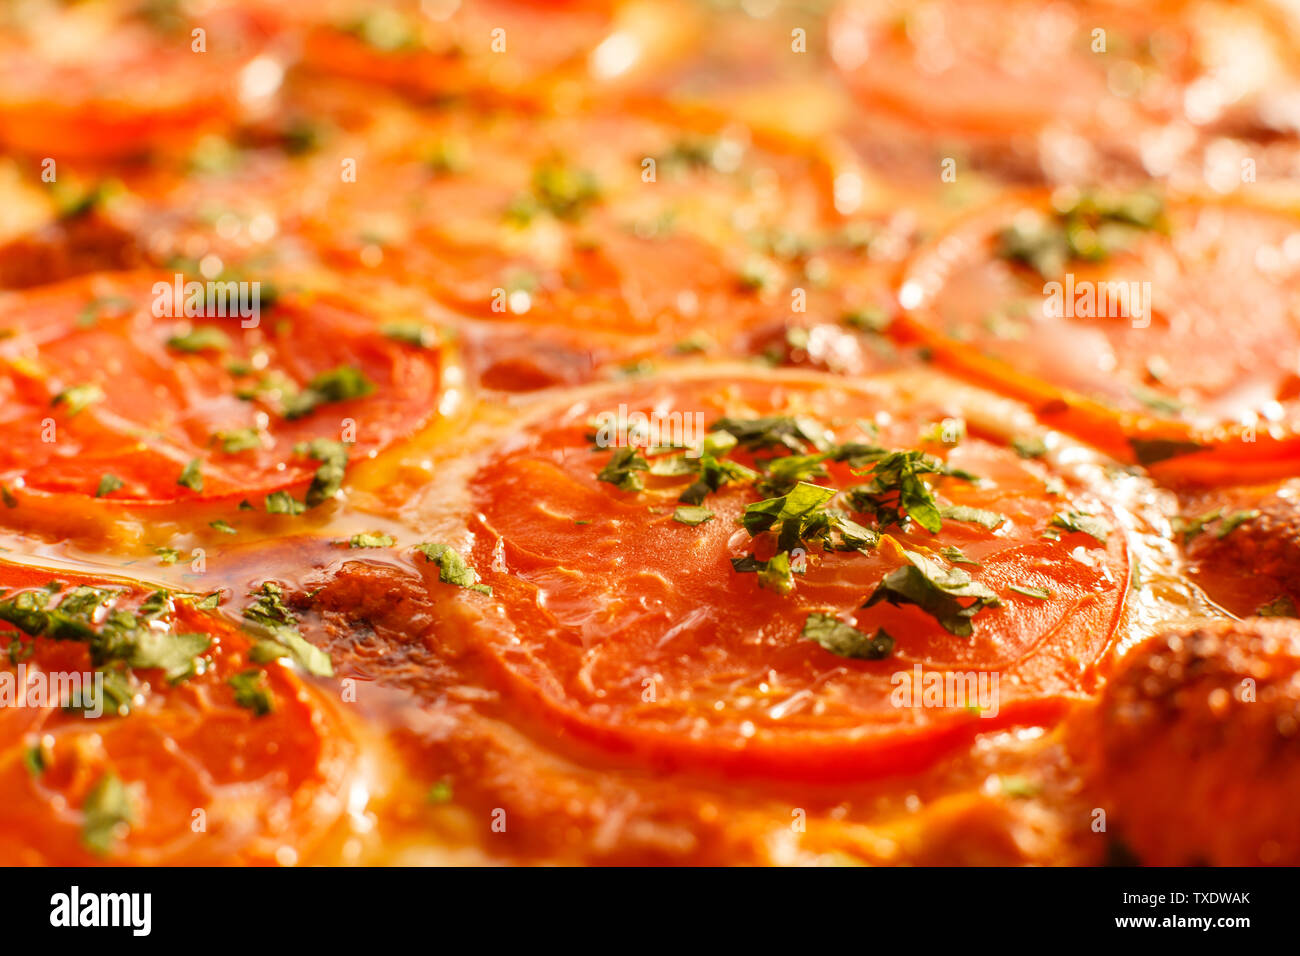 Close up Pizza Margarita. Delicious hot food sliced and served on white platter. Menu photo, Italian fast food. - Stock Image